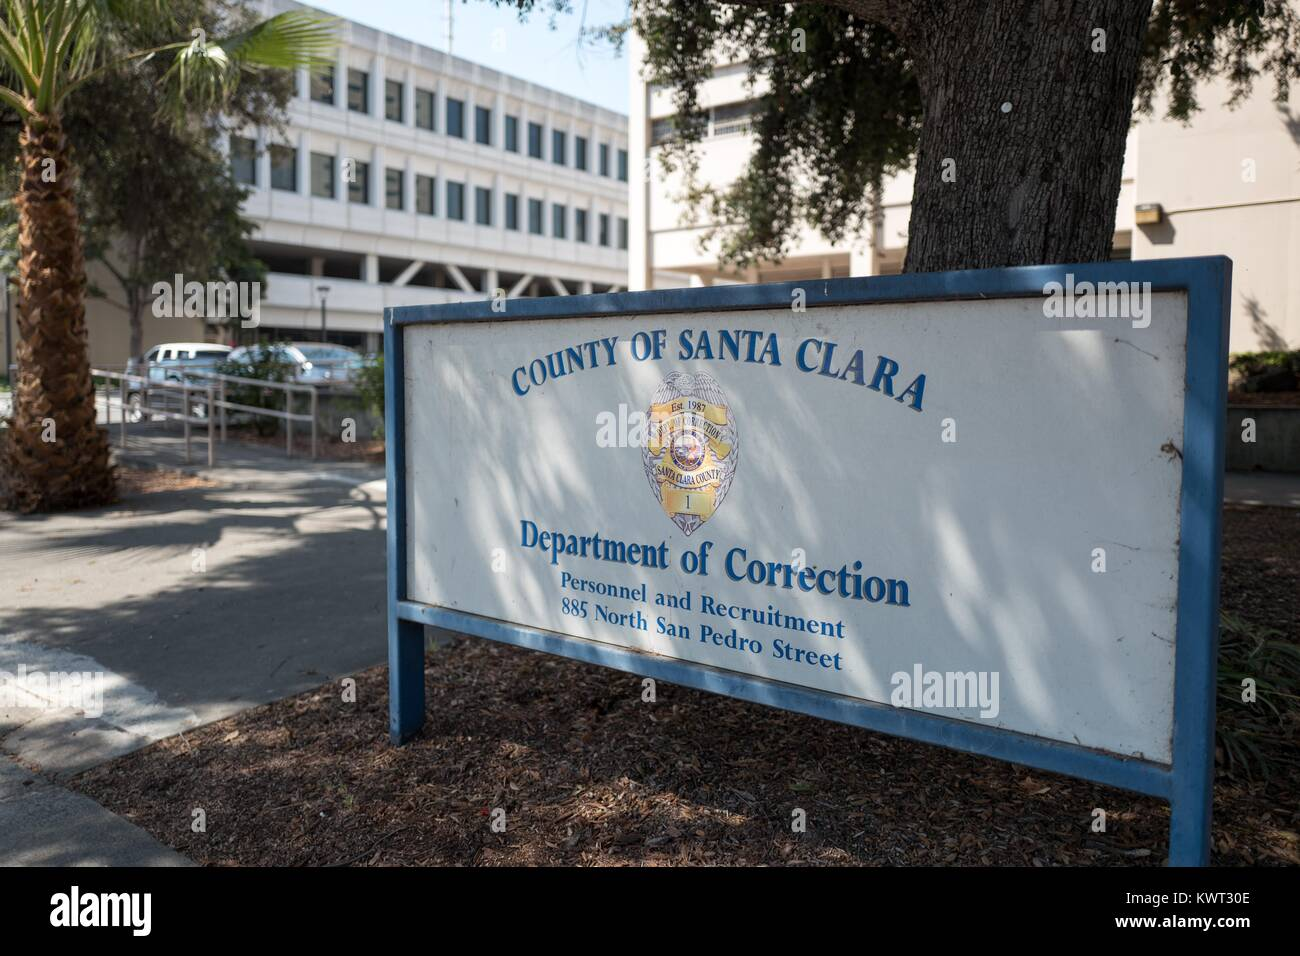 Signage for the Department of Correction for the County of Santa Clara, in the Civic Center neighborhood of San - Stock Image